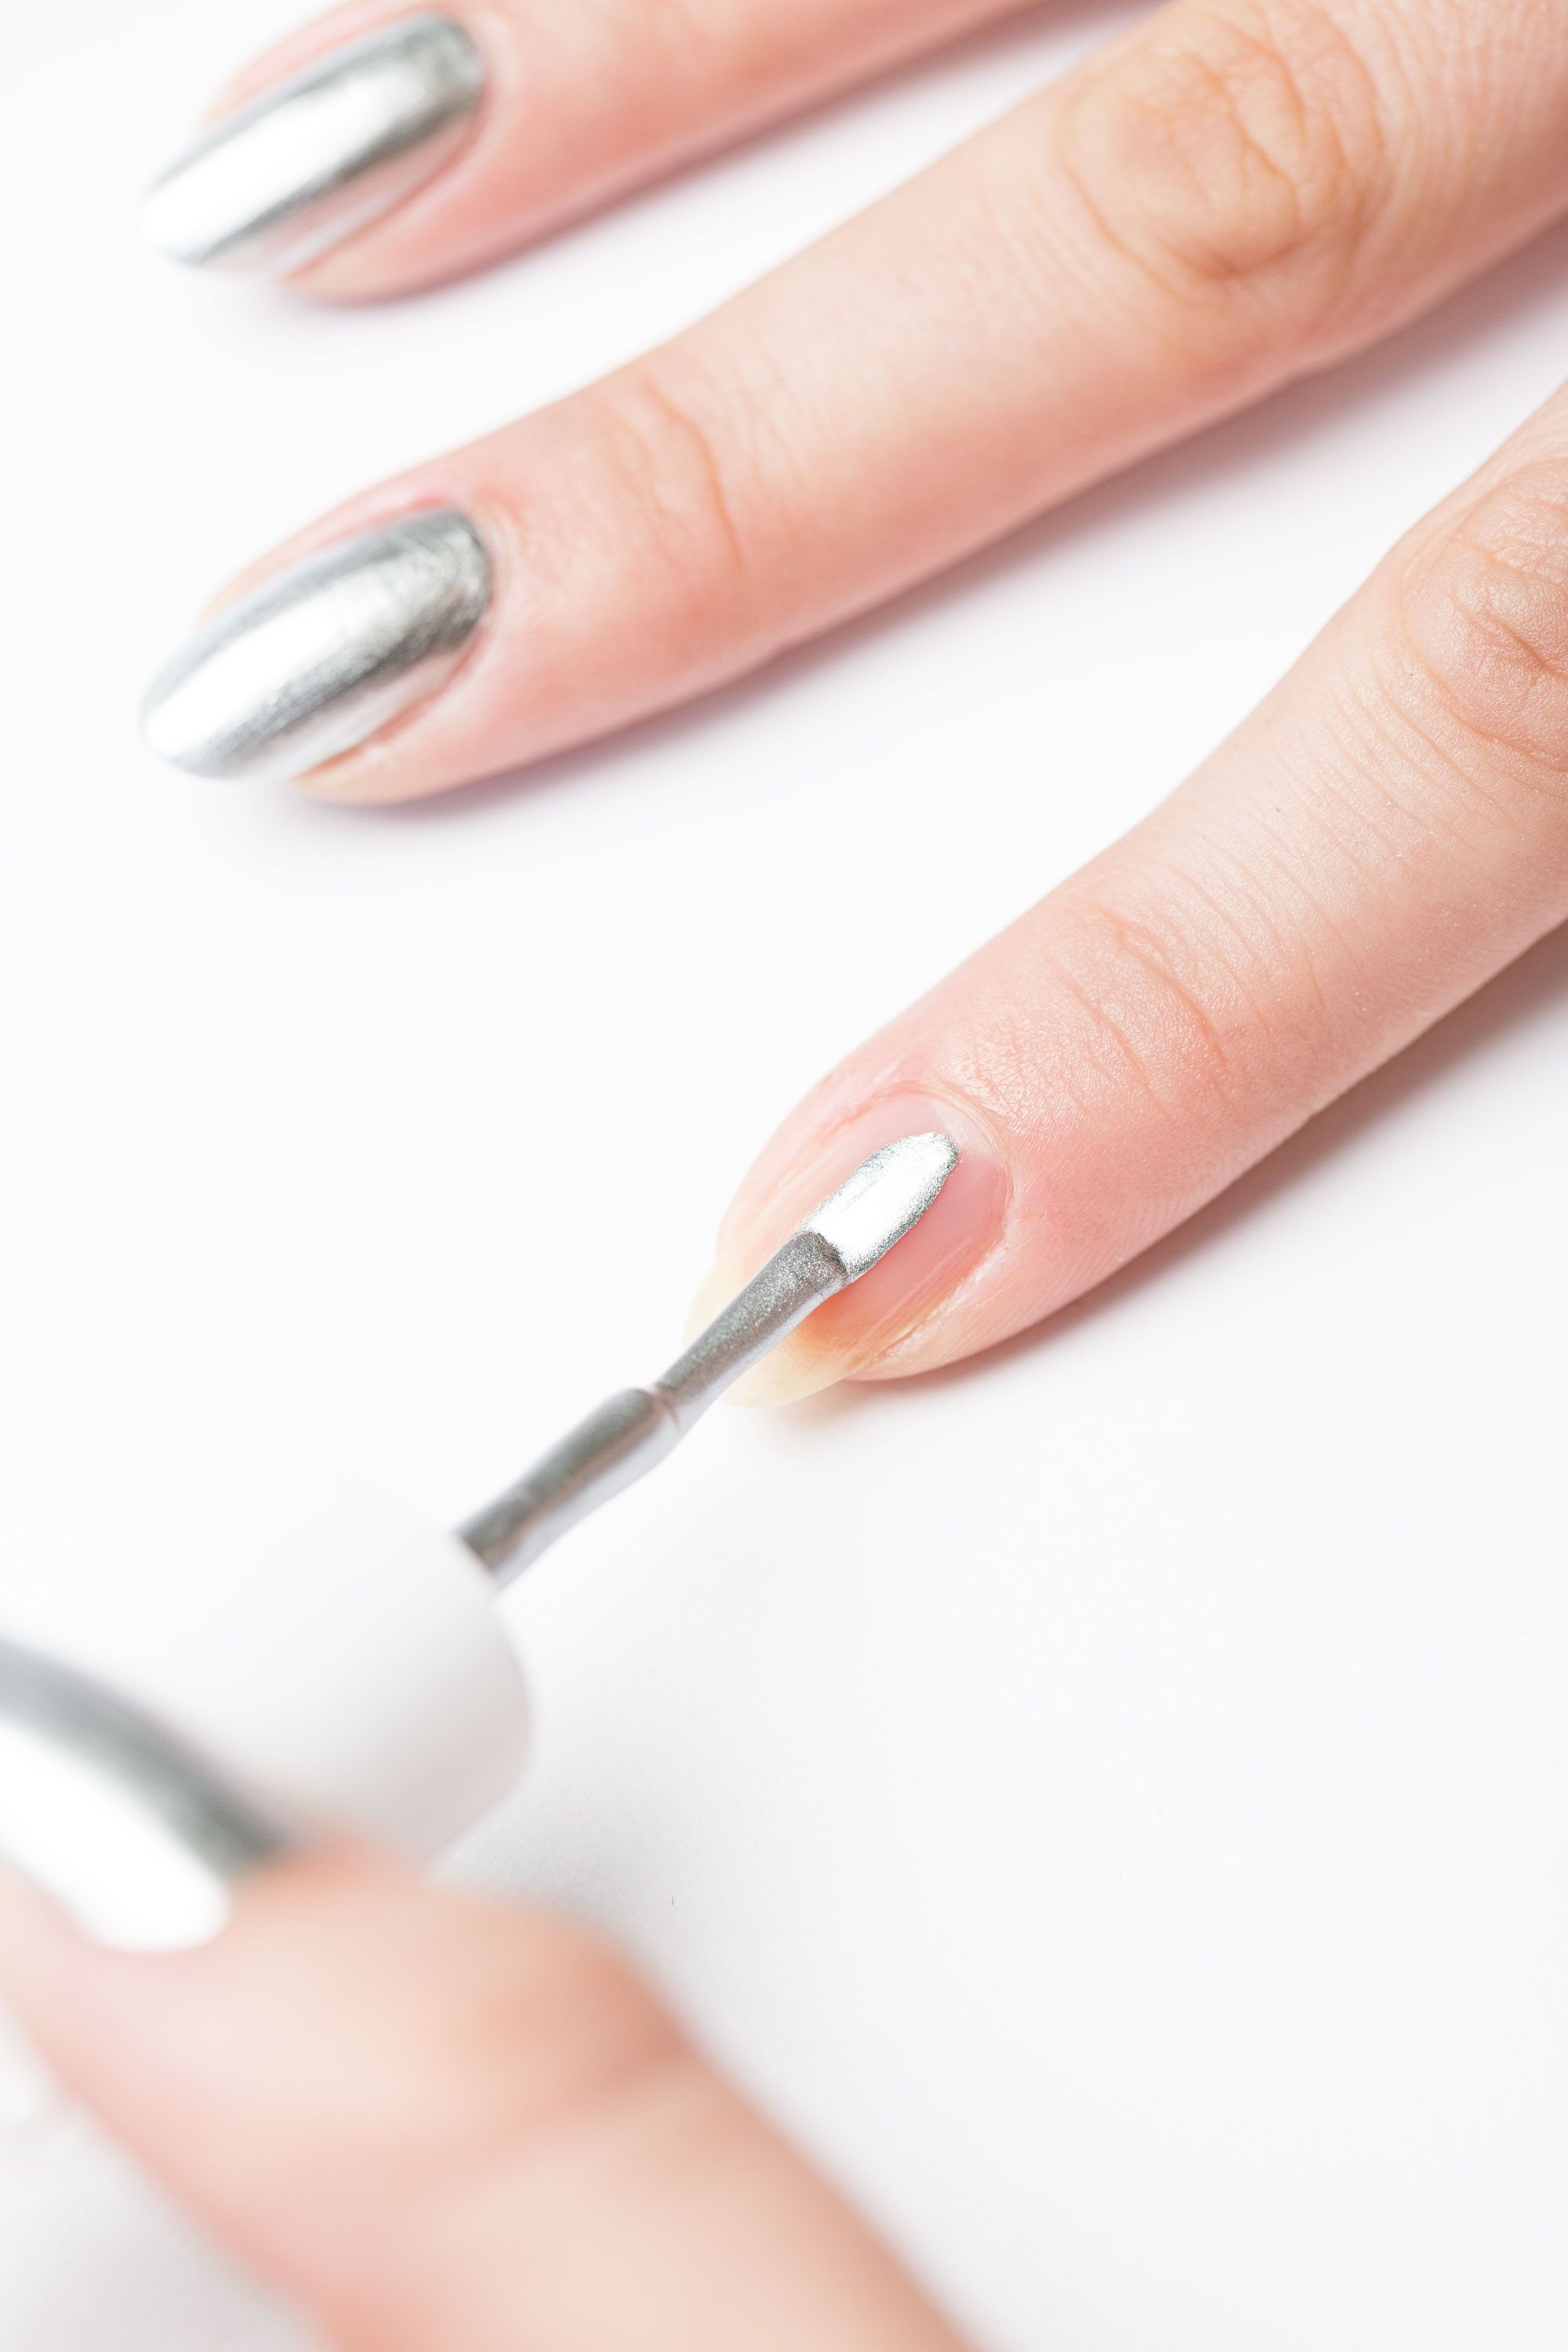 12 Easy Nail Designs - Simple Nail Art Ideas You Can Do Yourself